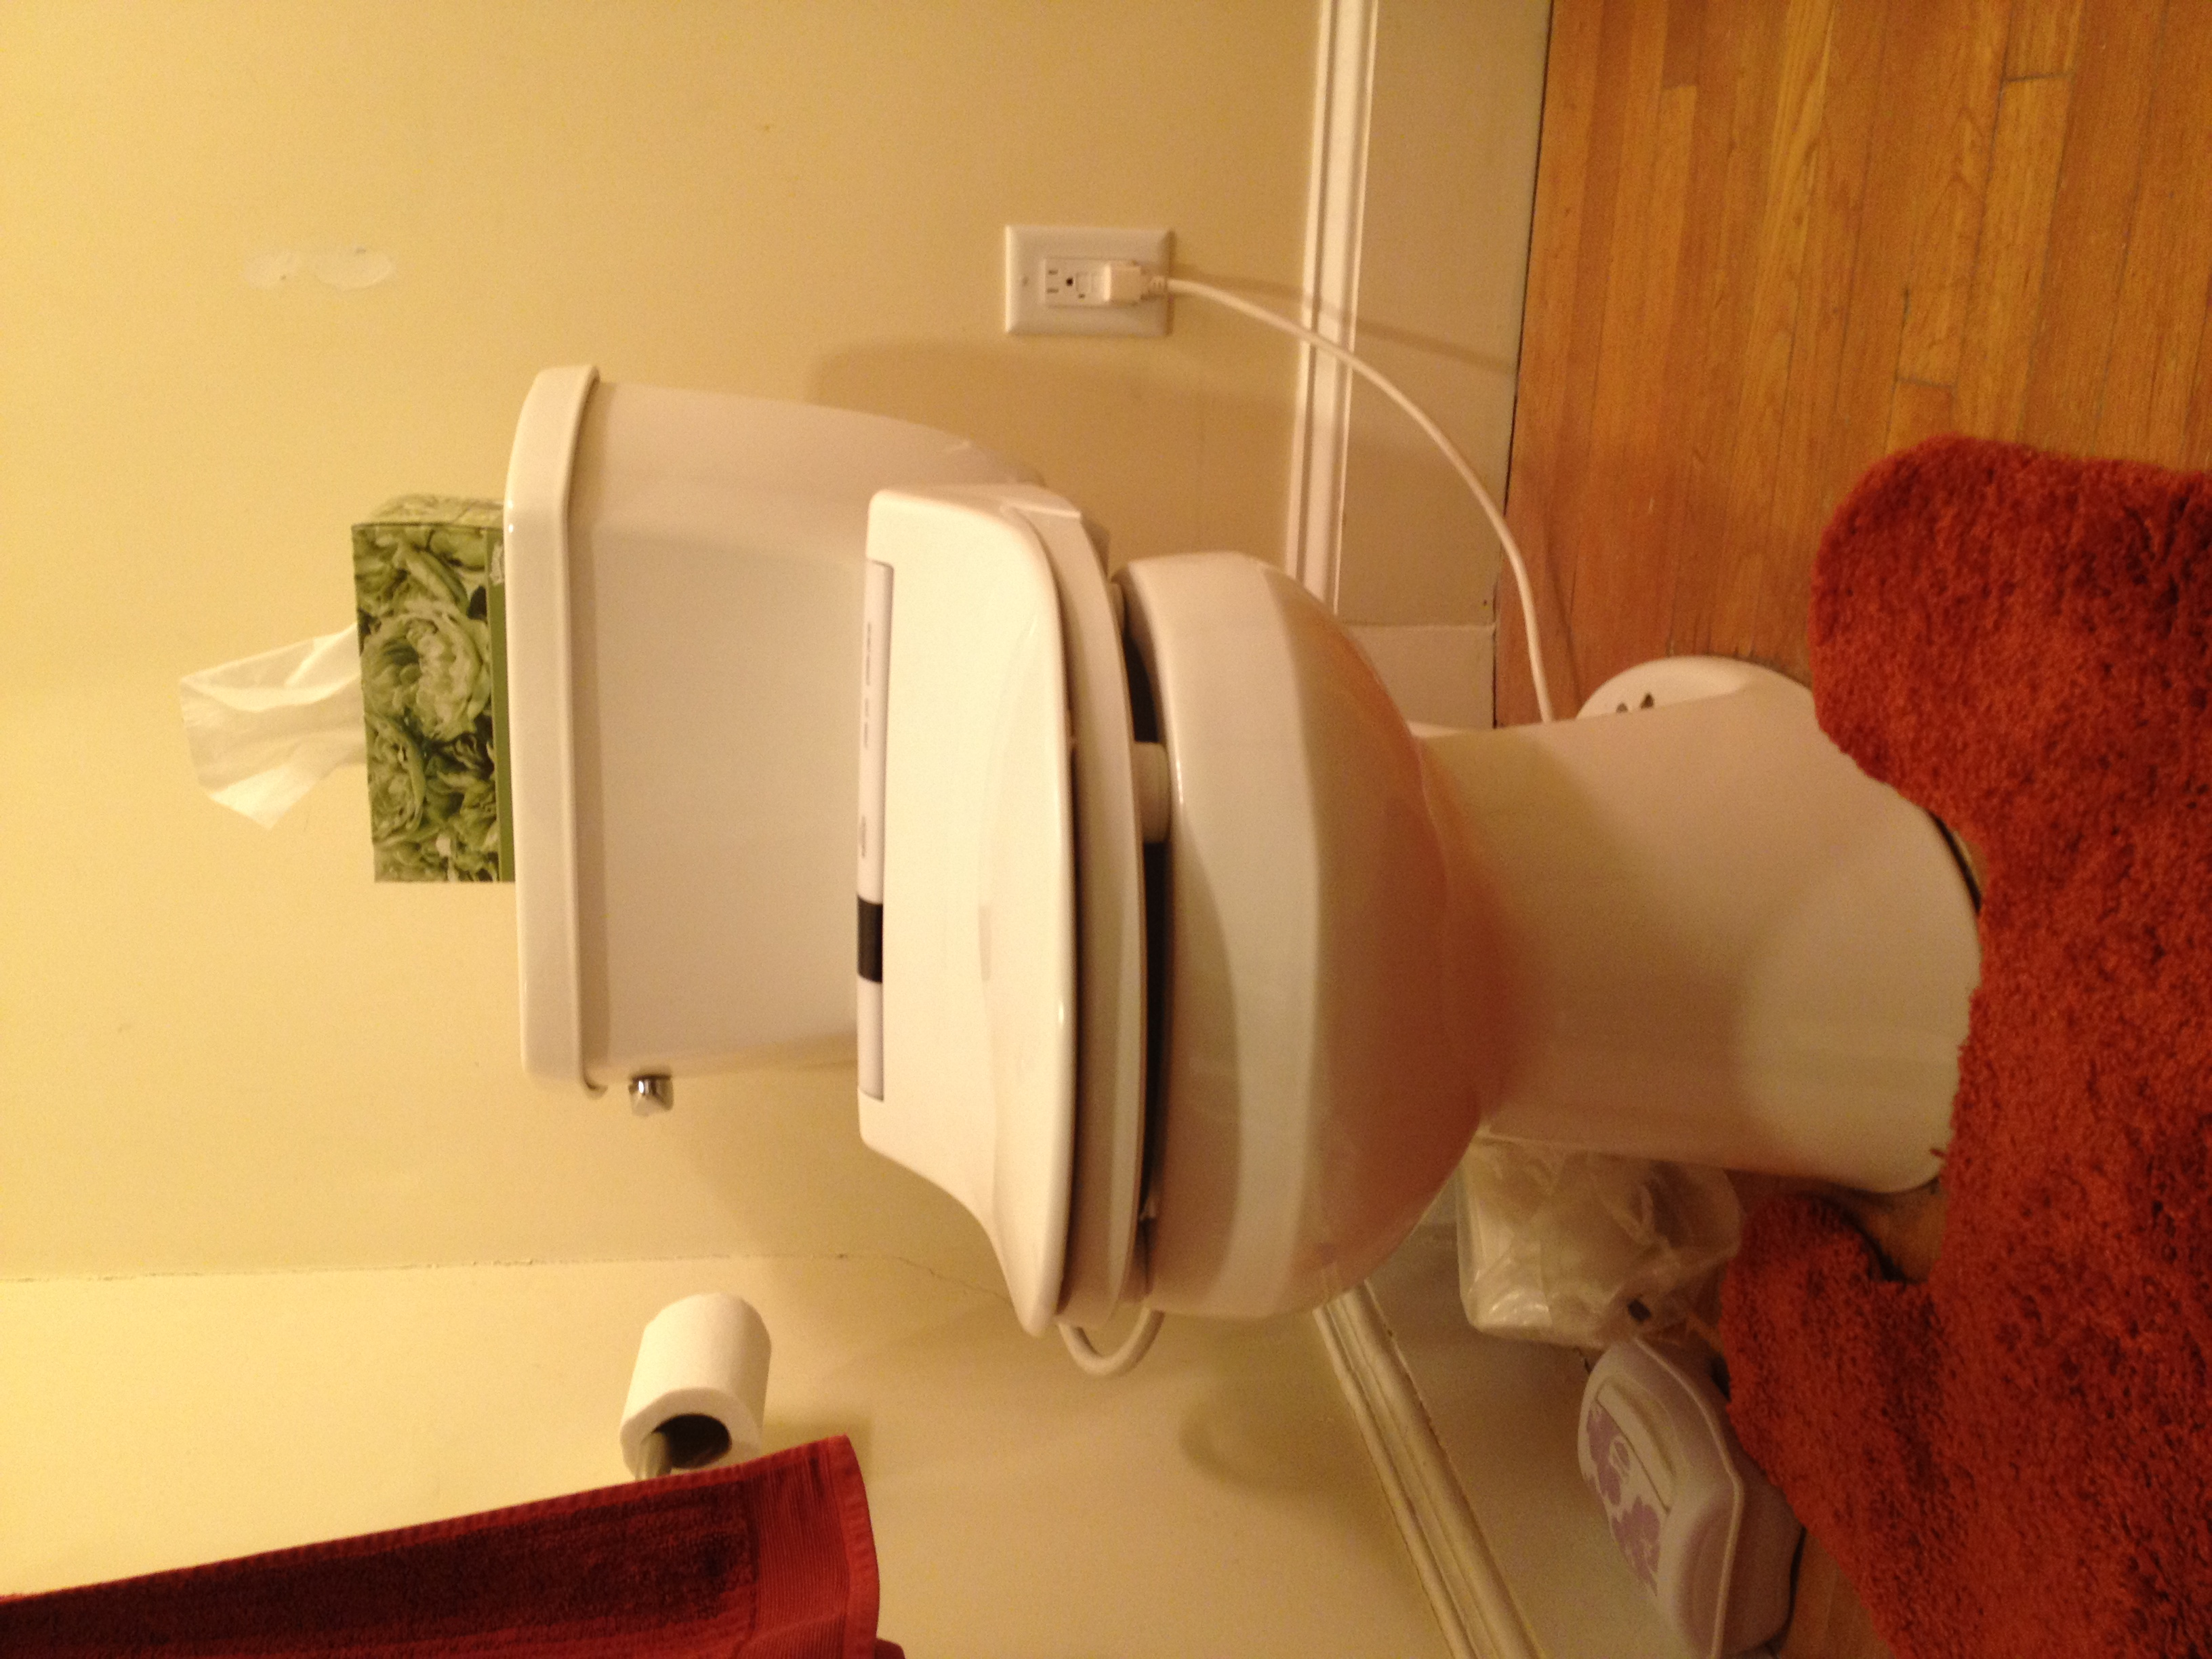 Bathroom Sink Outlet : New bathroom electrical outlet (one of two). Previously the bidet ...